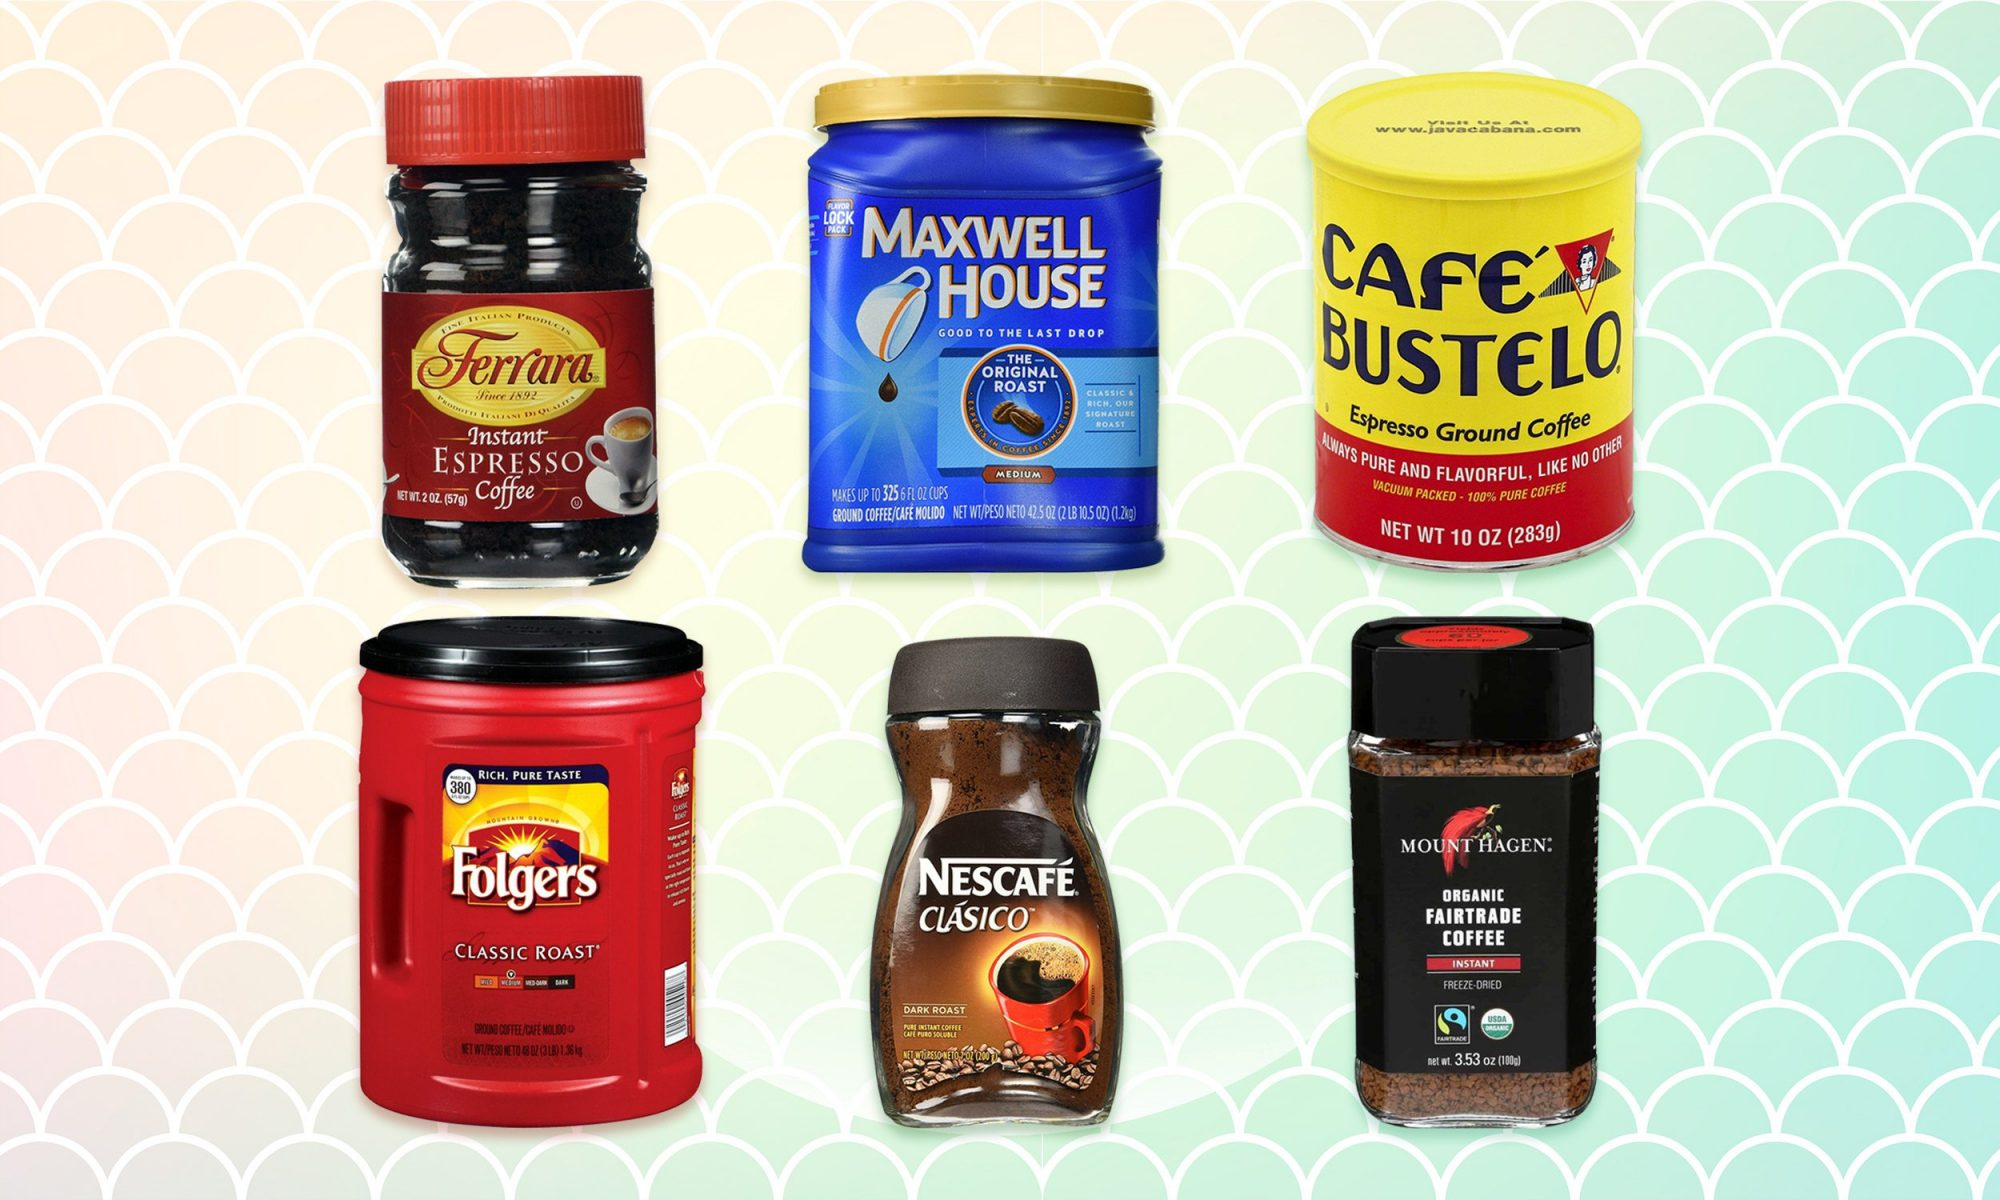 EC: I Tried 6 Instant Coffees and Here's the Worst One